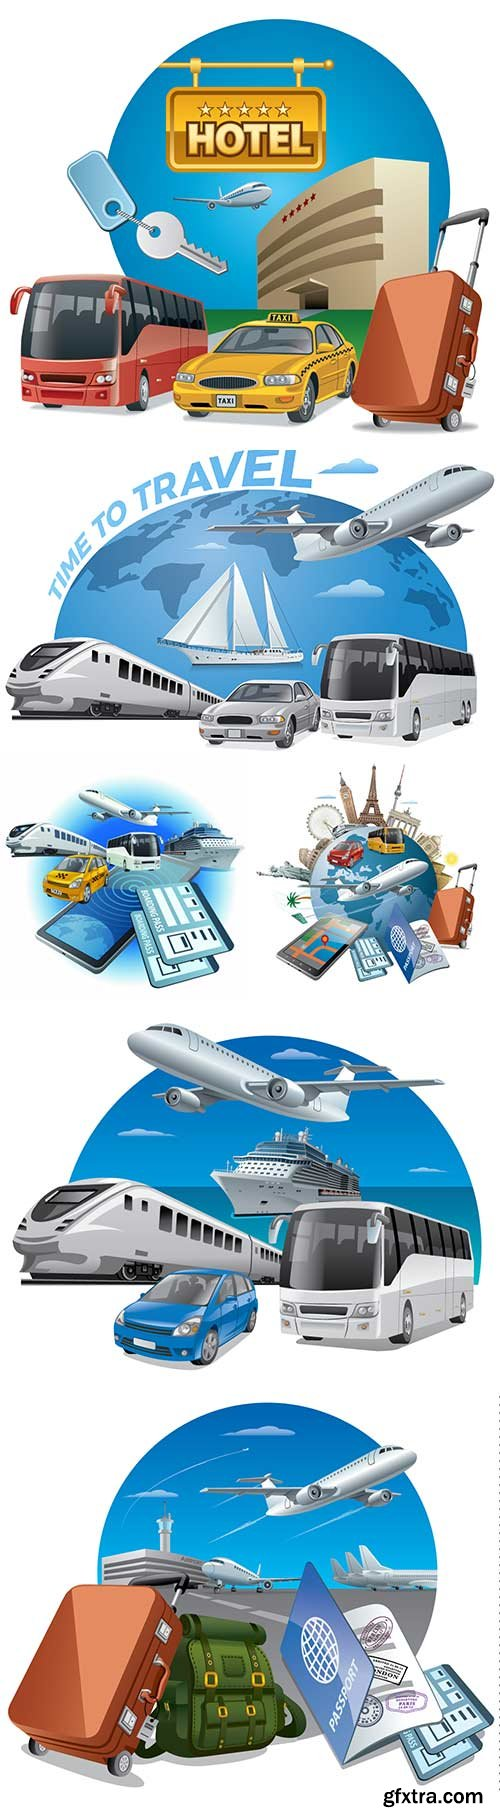 Transports for travel vector illustration